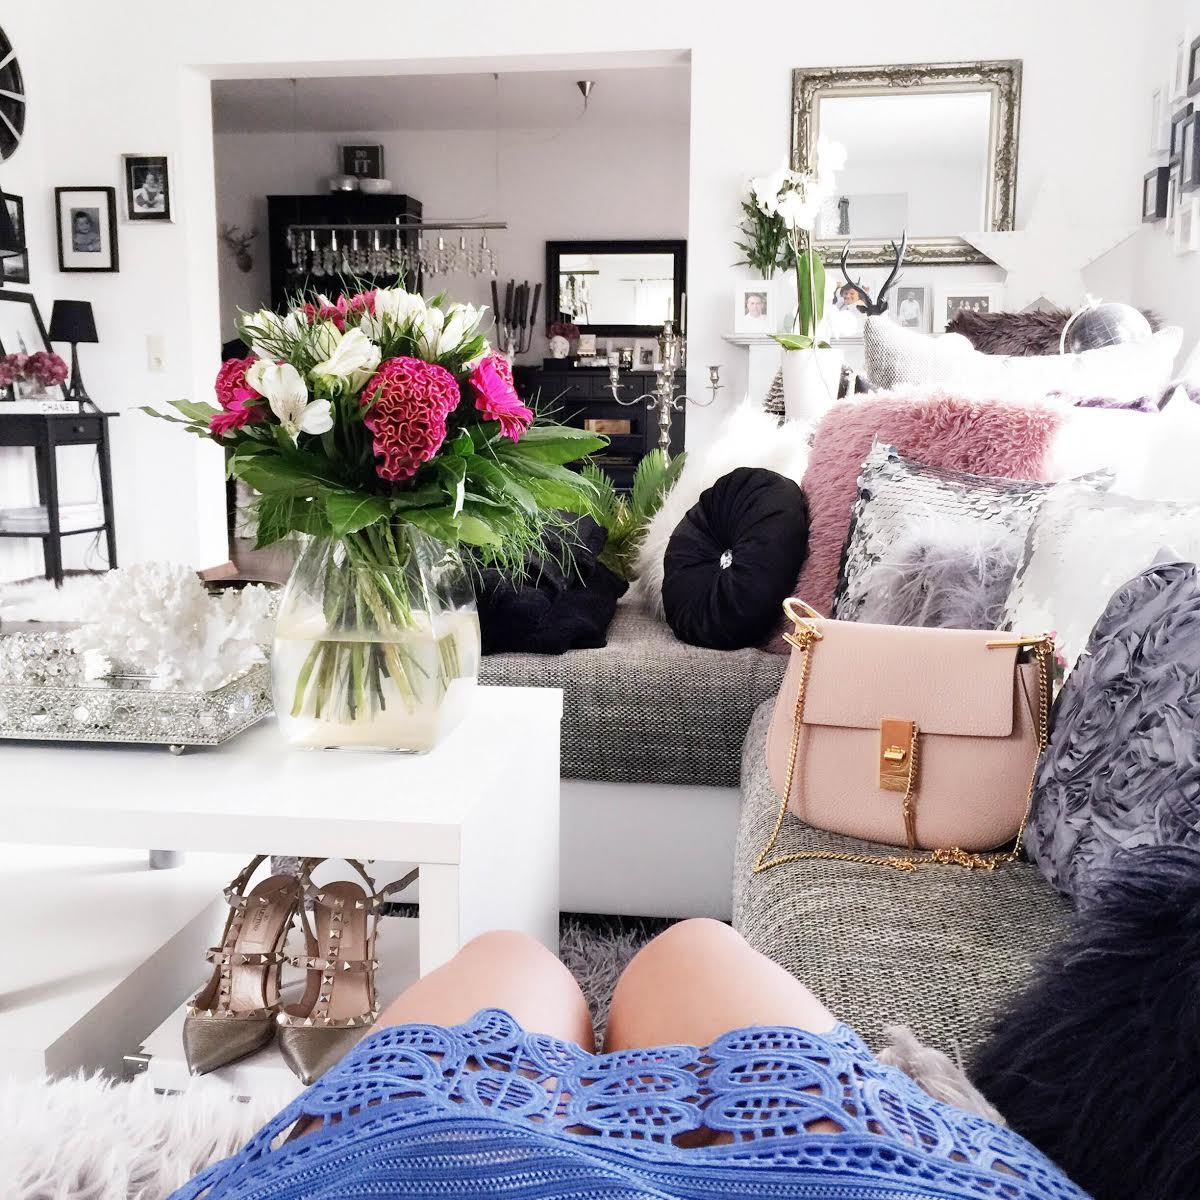 fashionhippieloves-interior-living-room-self-portrait-dress-valentino-rockstuds